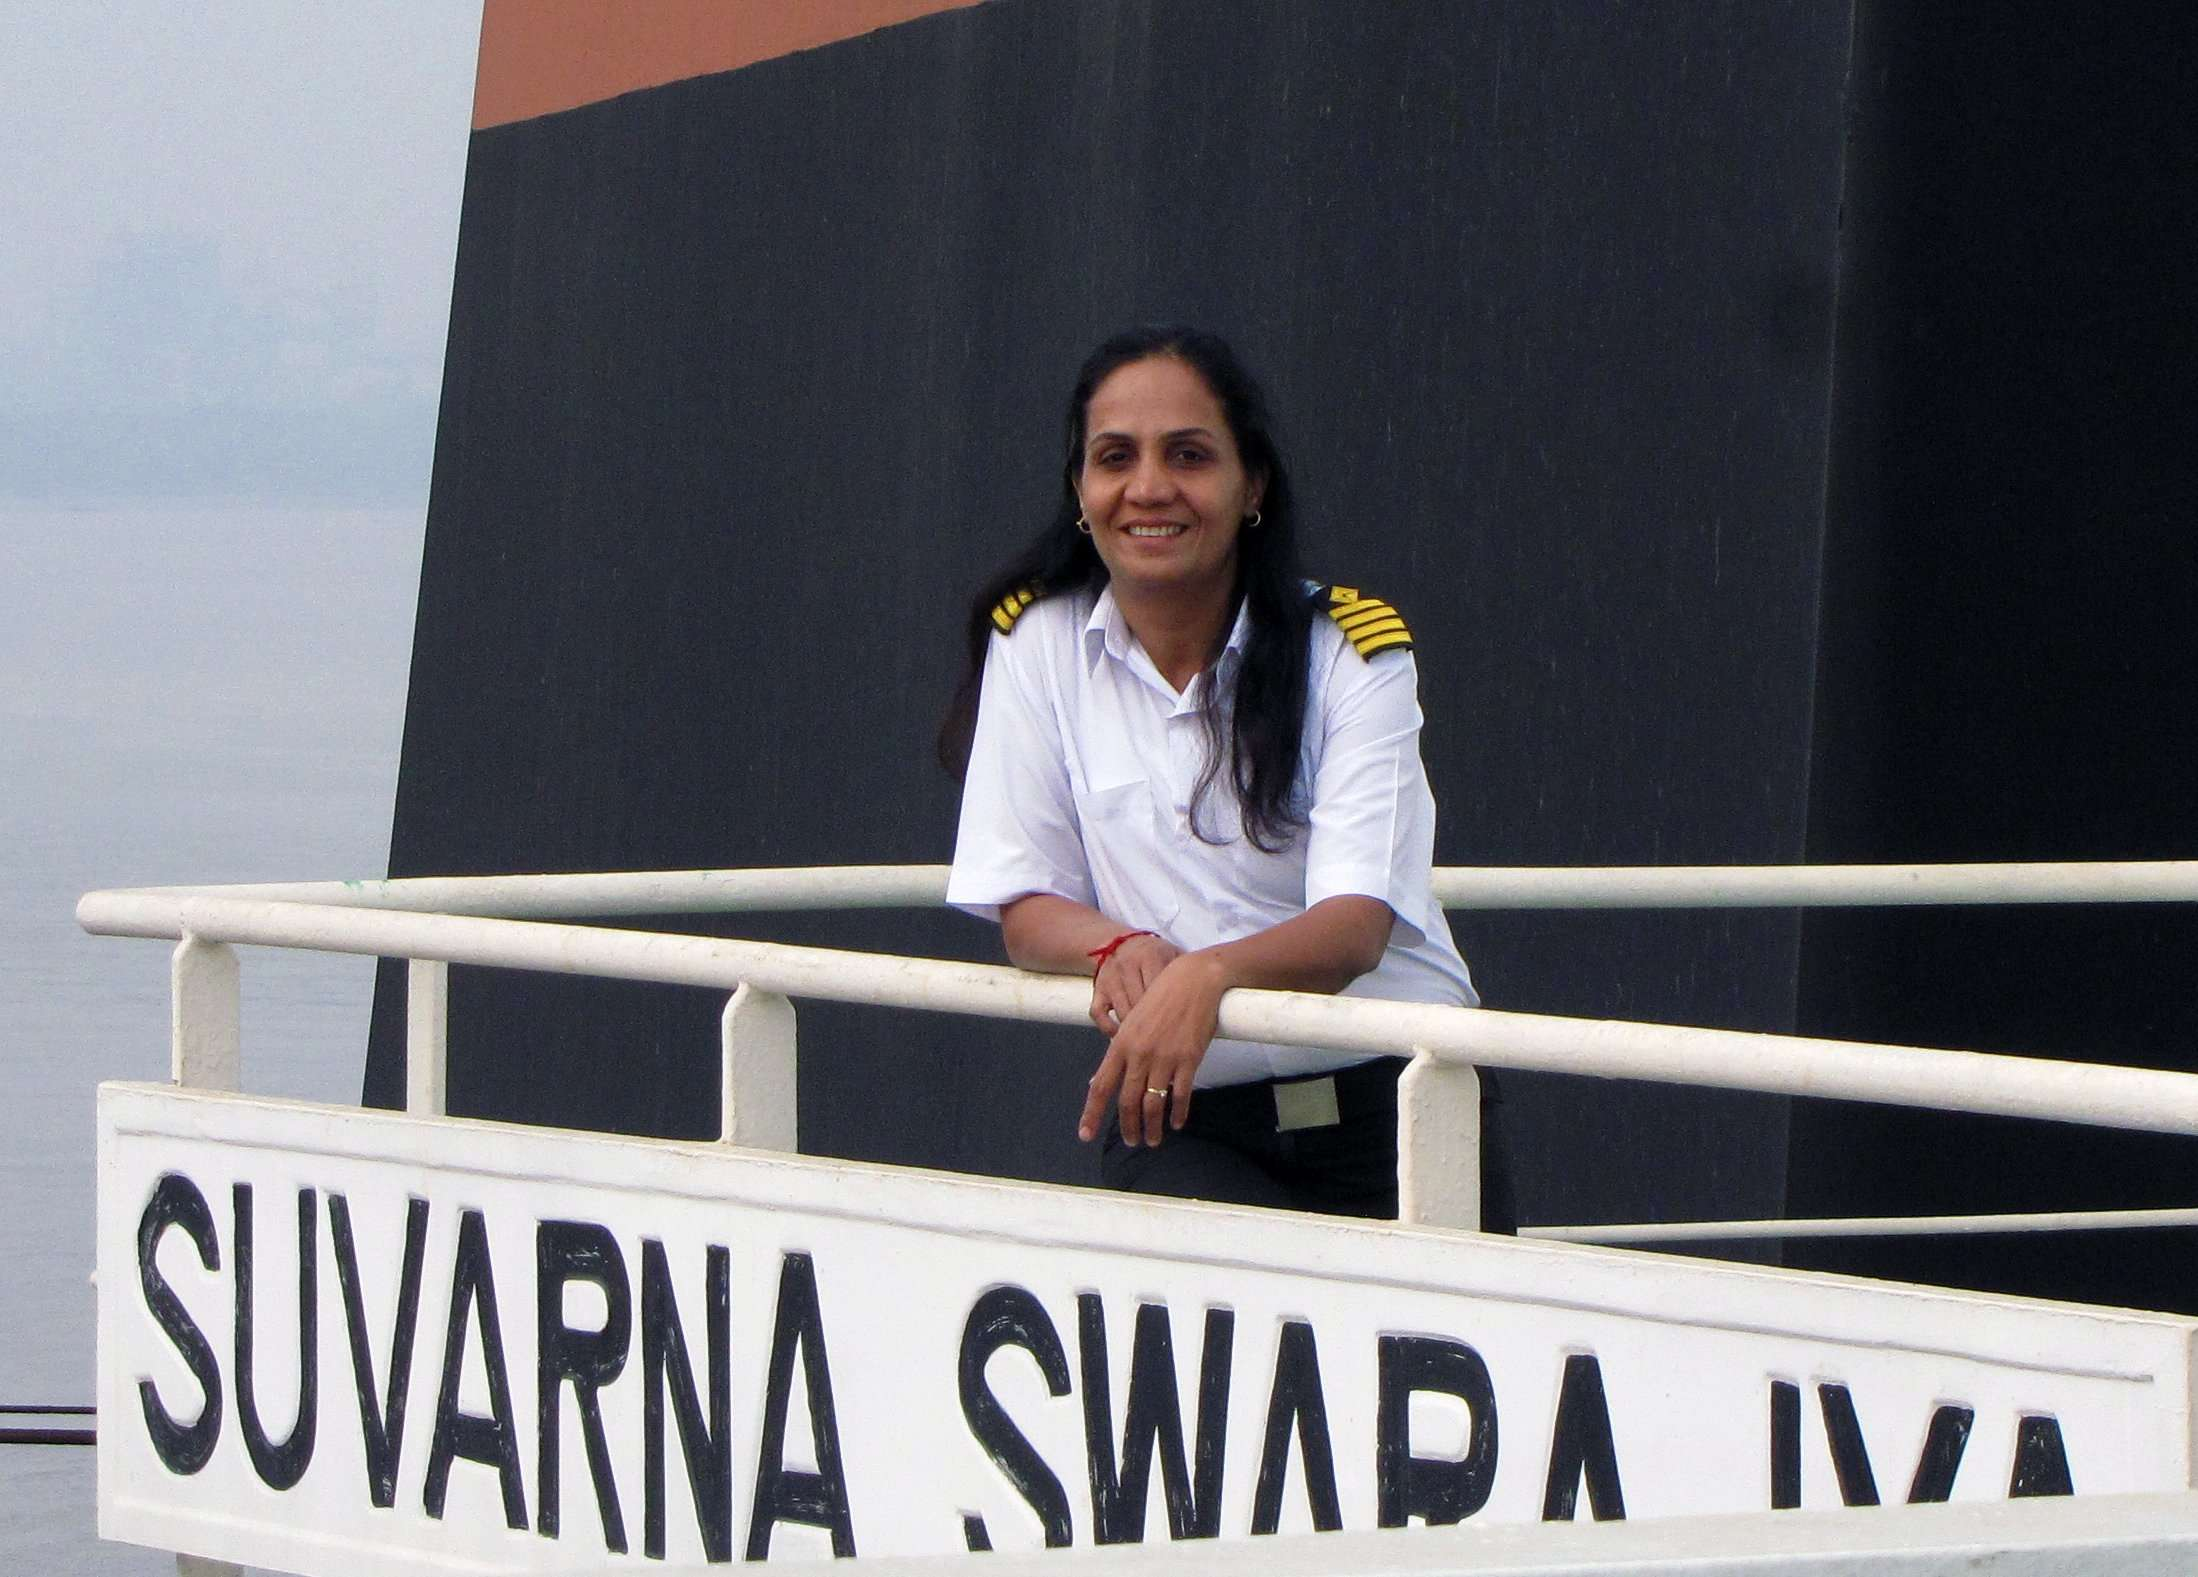 Women must be determined to set a benchmark in an unusual career, says first female Merchant Navy captain Radhika Menon